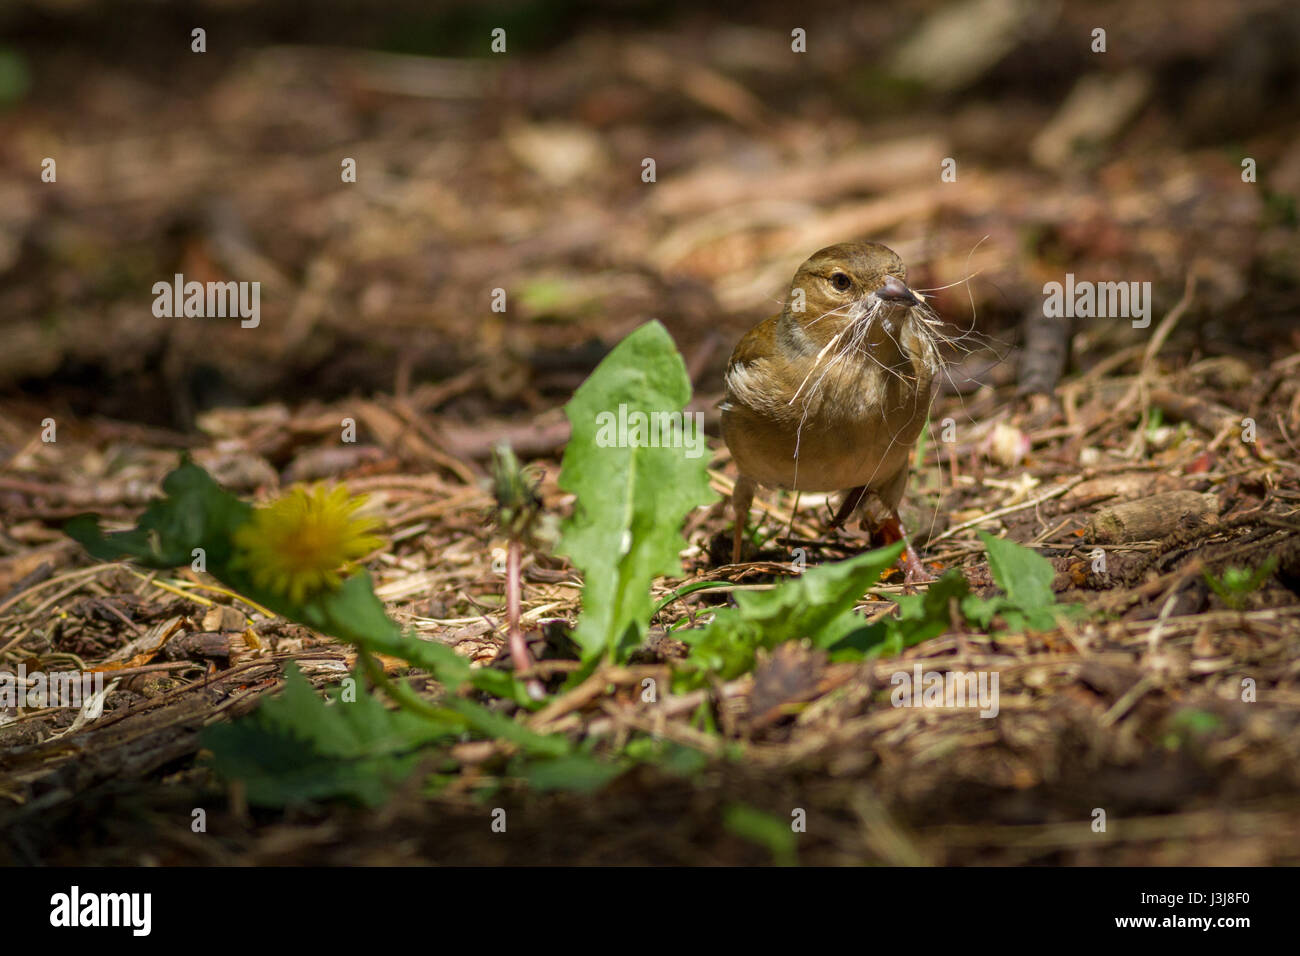 UK Wildlife:  Female chaffinch collecting dog hair for a nest, Yorkshire - Stock Image